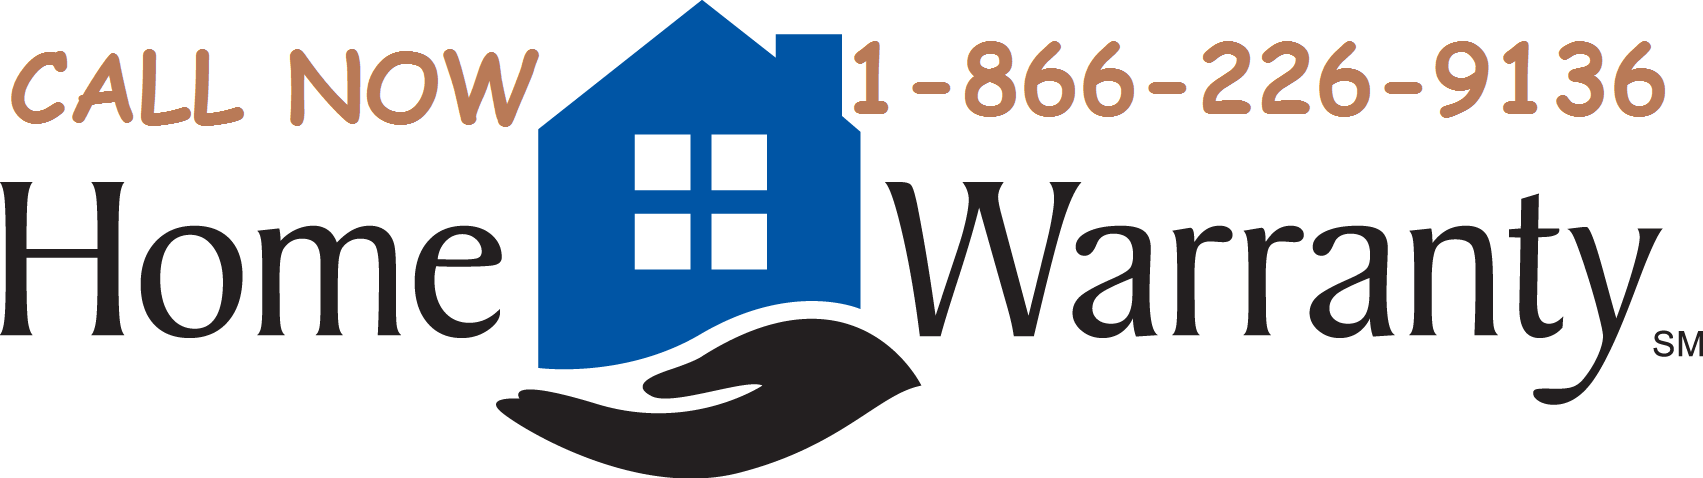 Best Home Warranty! Guaranteed Discounts up-to 50%. Call Now +1-866-226-9136